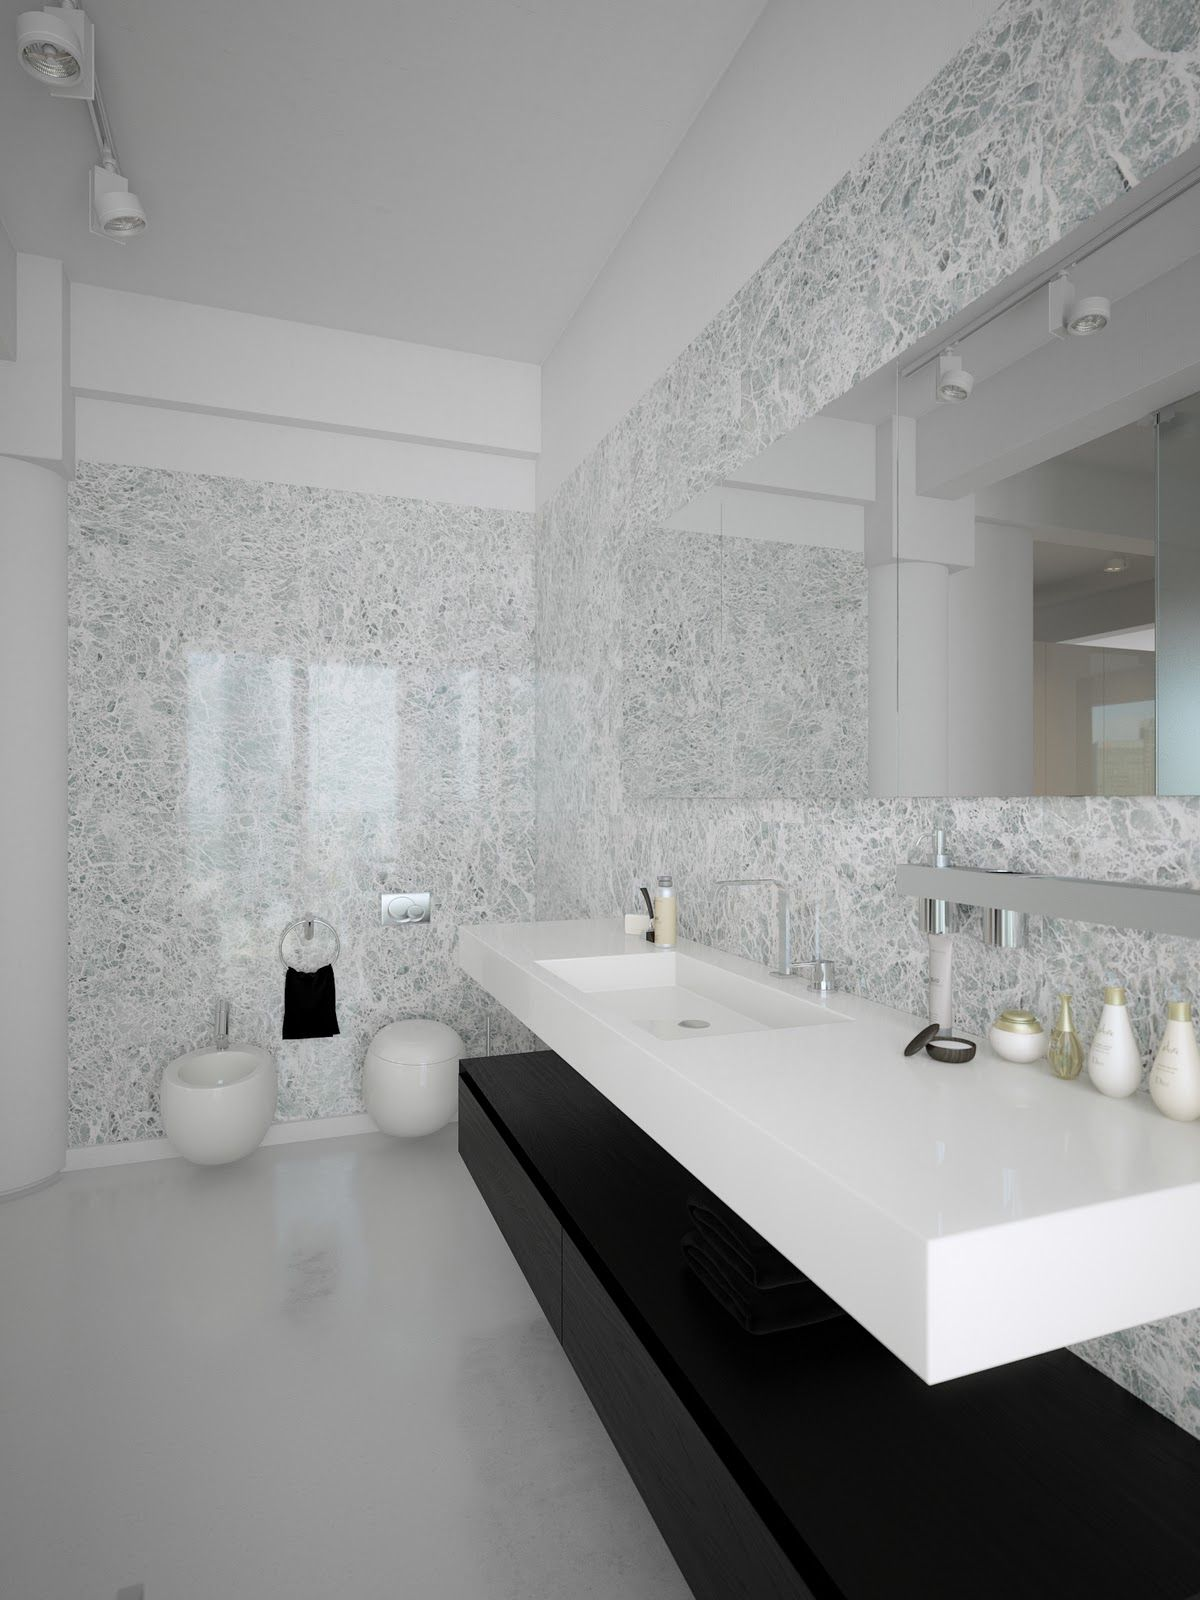 Coolest minimalist modern bathroom design contemporary for Modern style bathroom designs